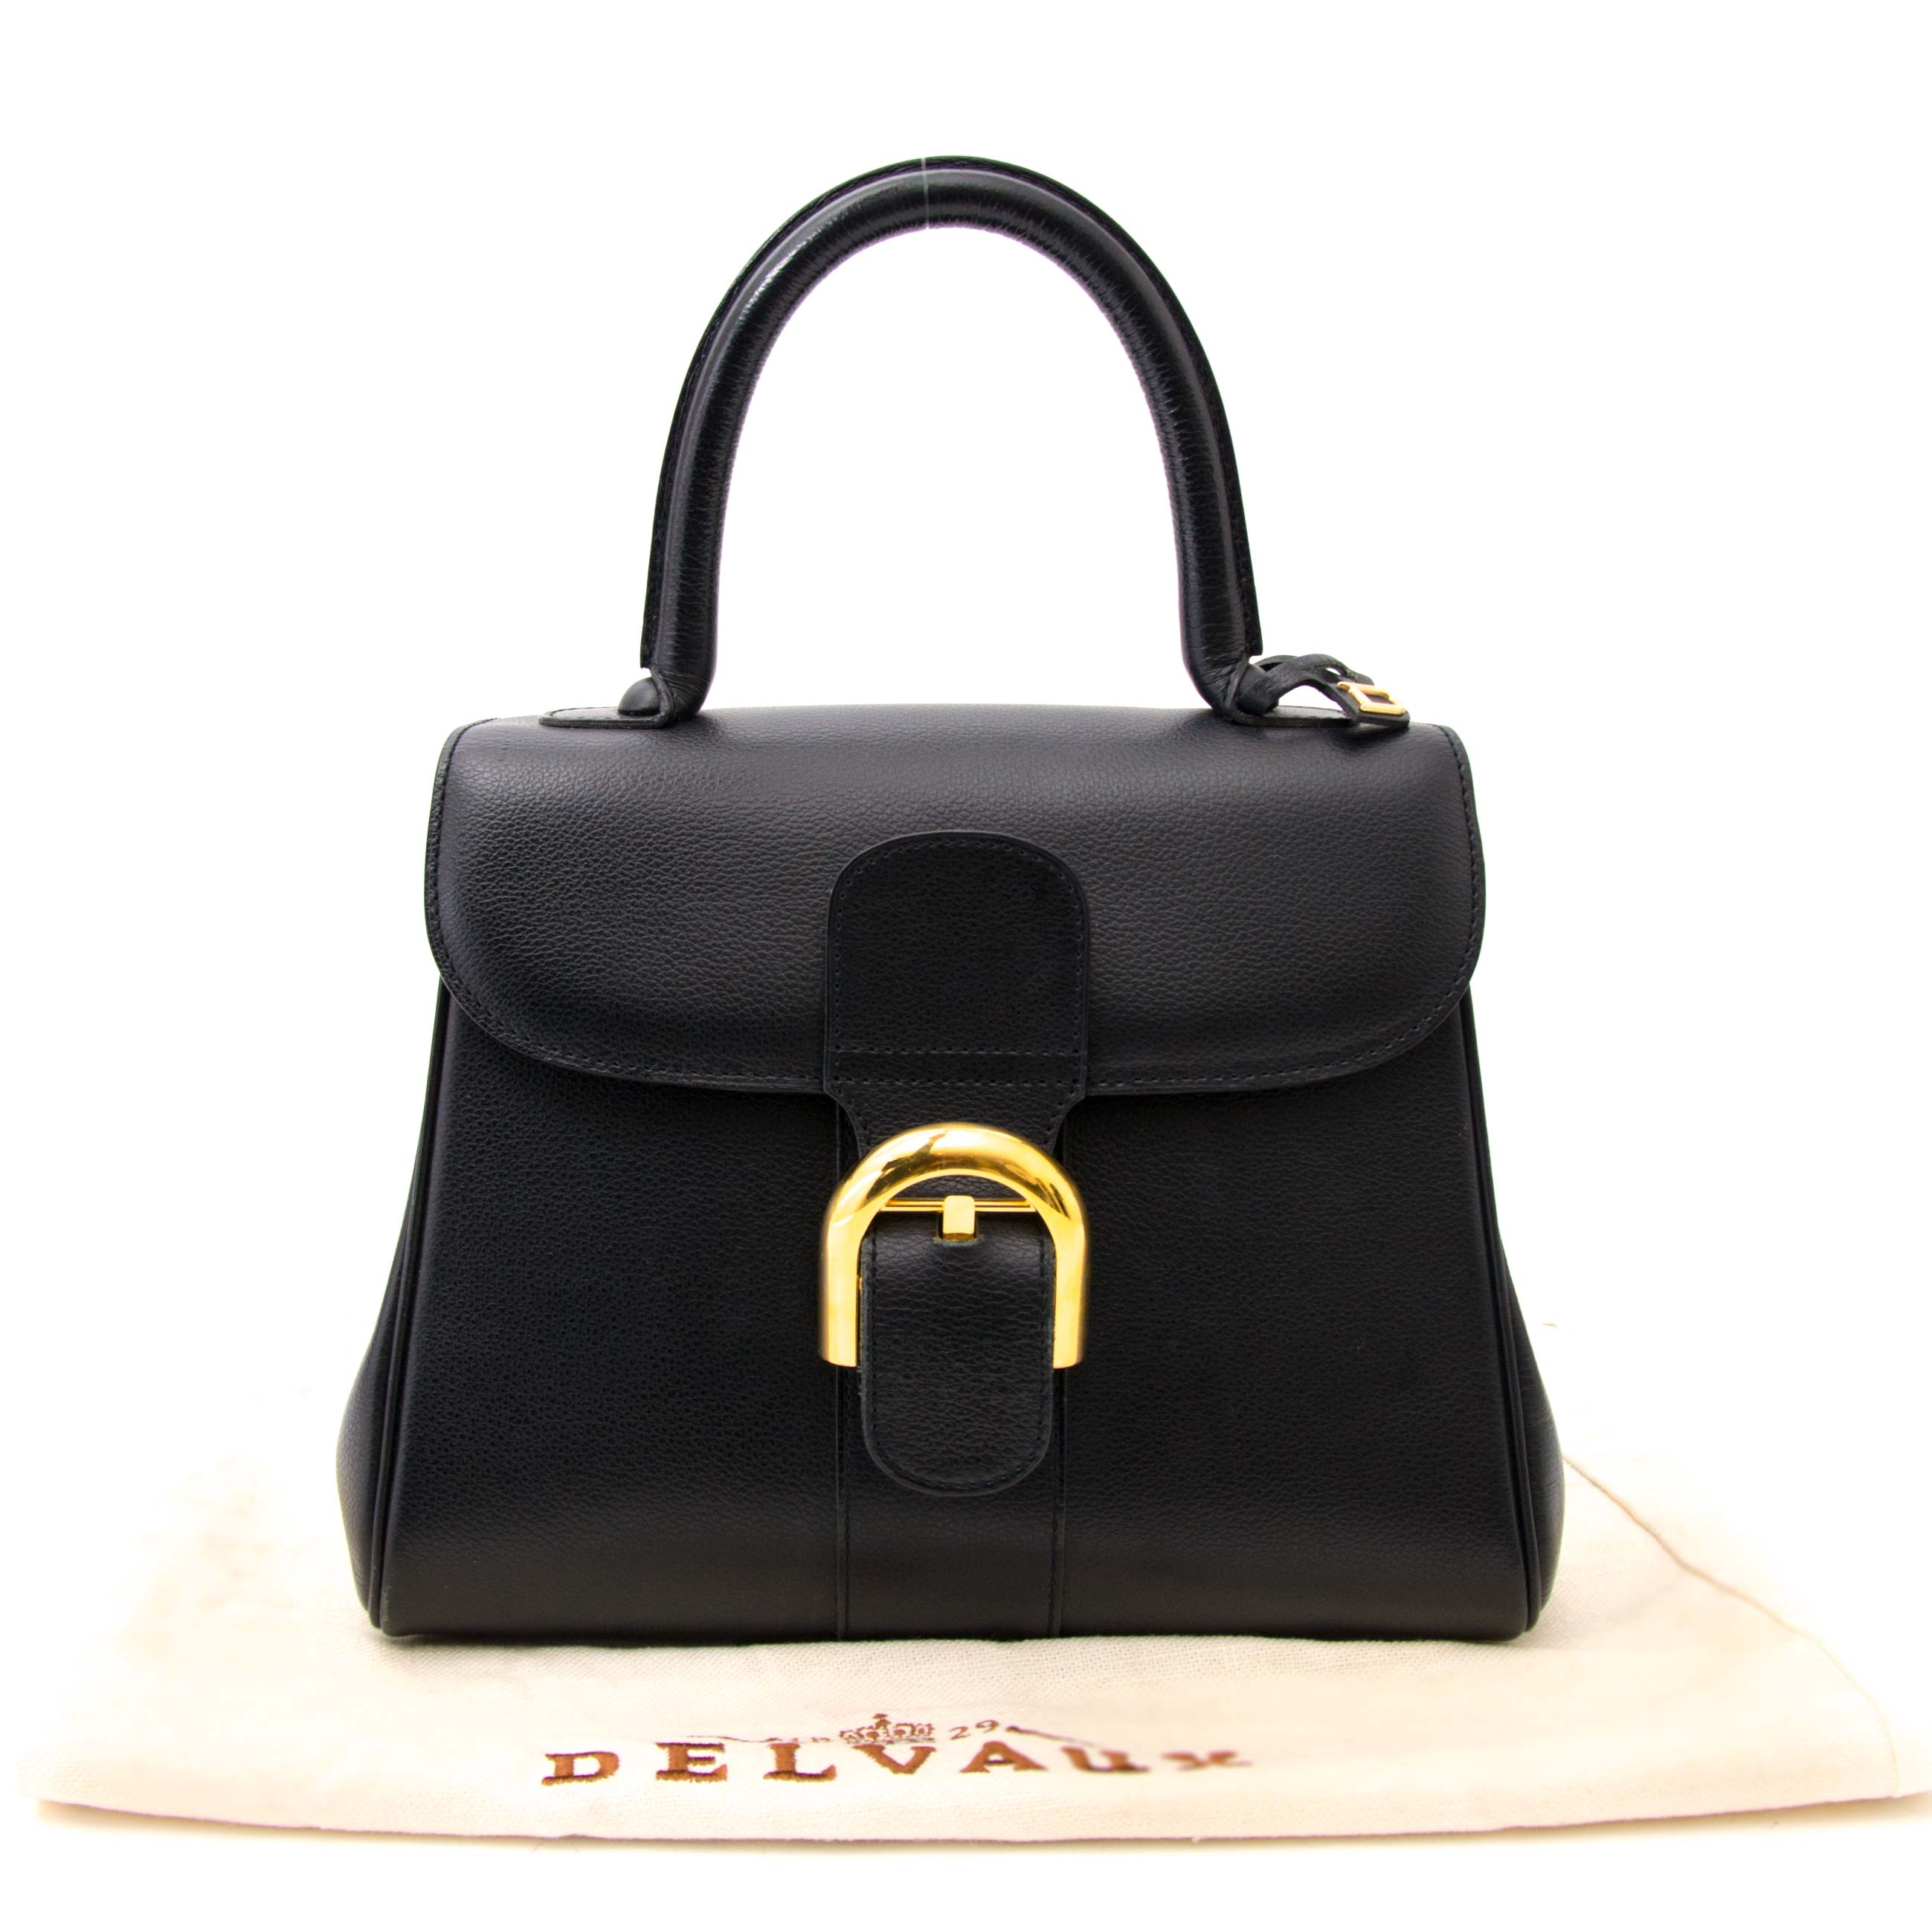 shop safe online  your secondhand Delvaux Brillant Black Pm GHW